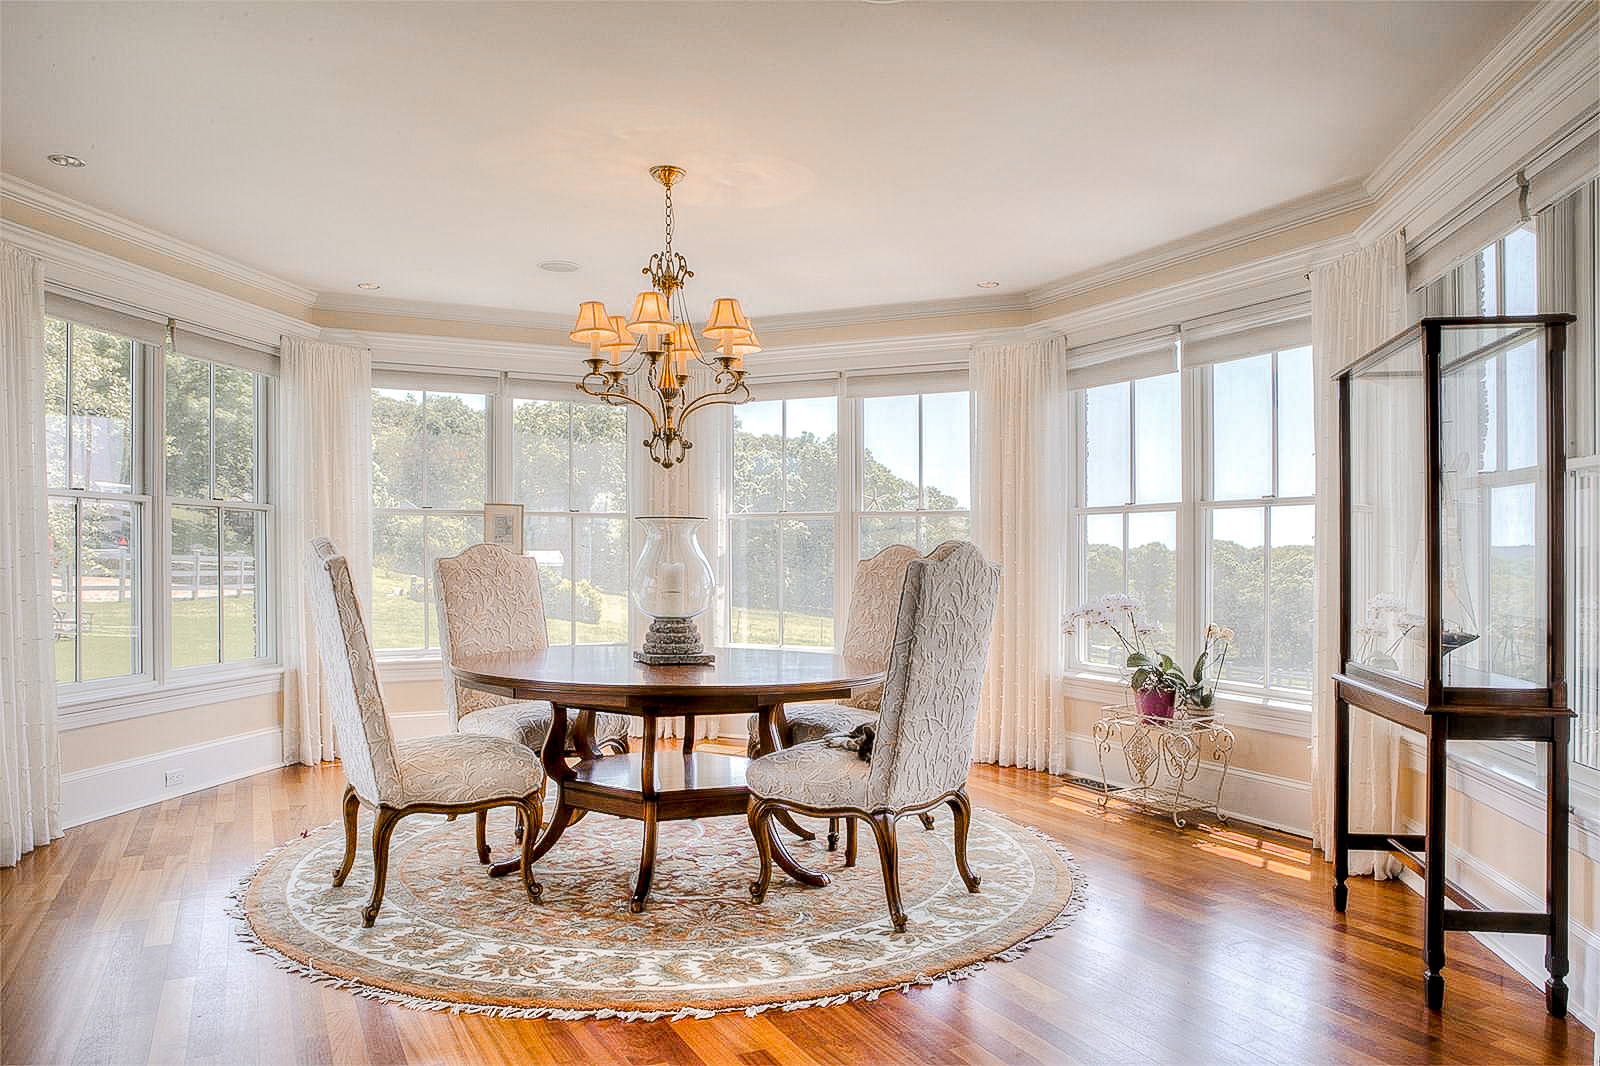 Luxe_and_Livable_Interior_Design_Blog_by_Maloney_Interiors_Newport_Rhode_Island_Gustave_White_Realty_21.jpg